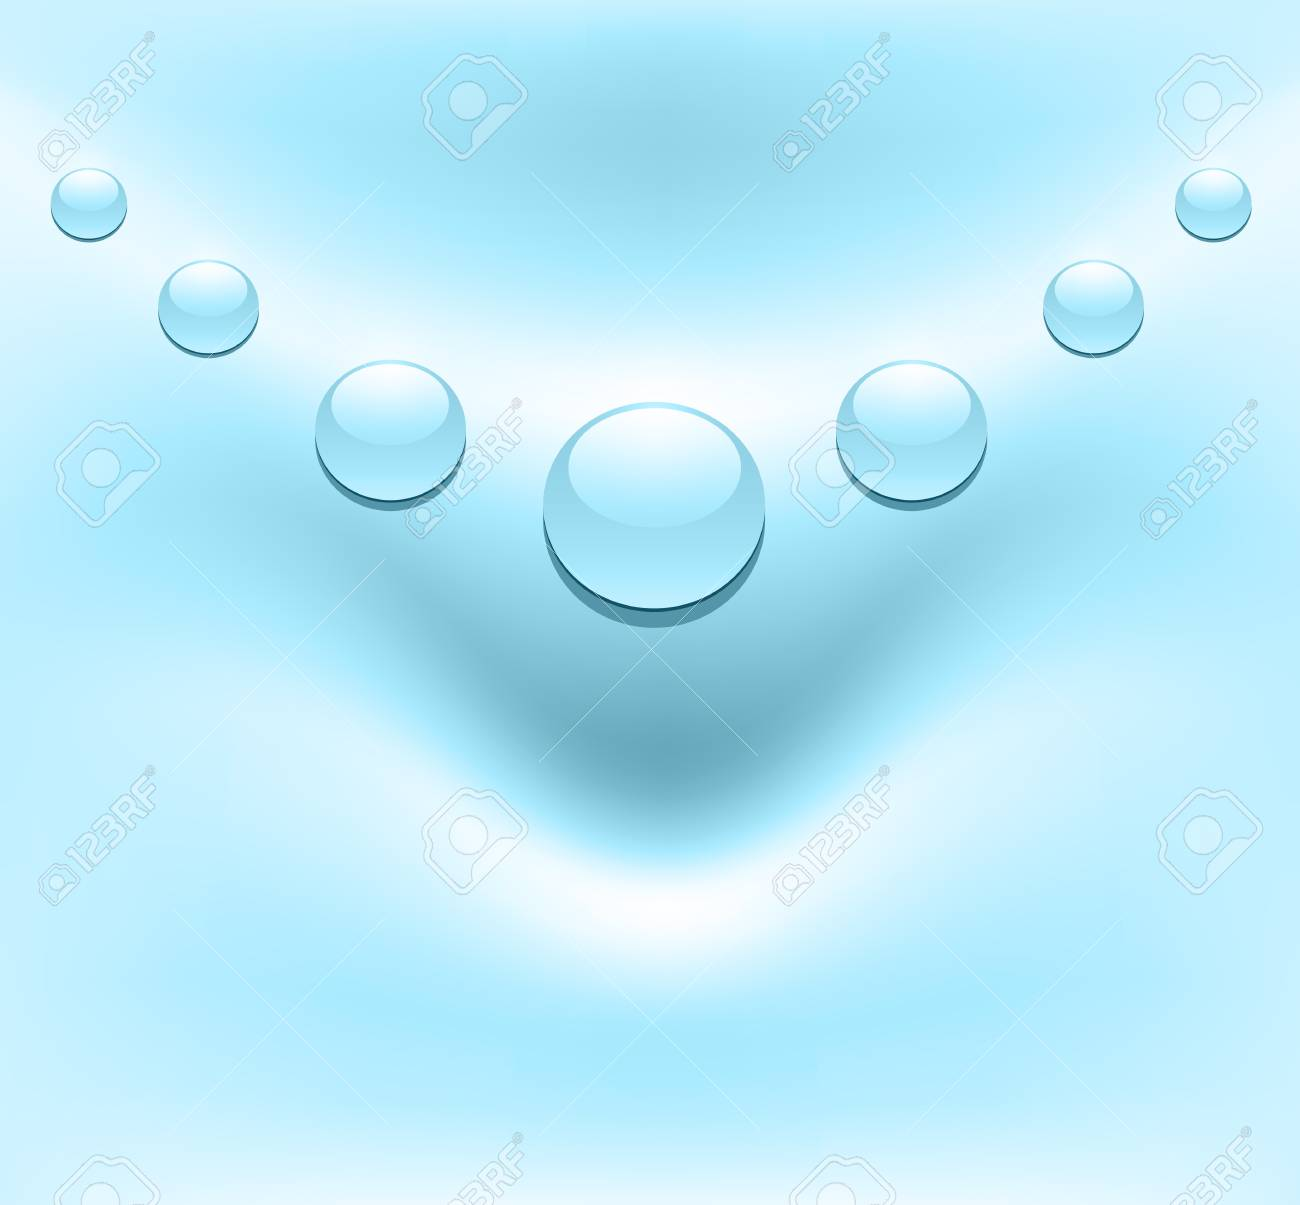 Blue, soft background with water drops. Stock Vector - 21735009